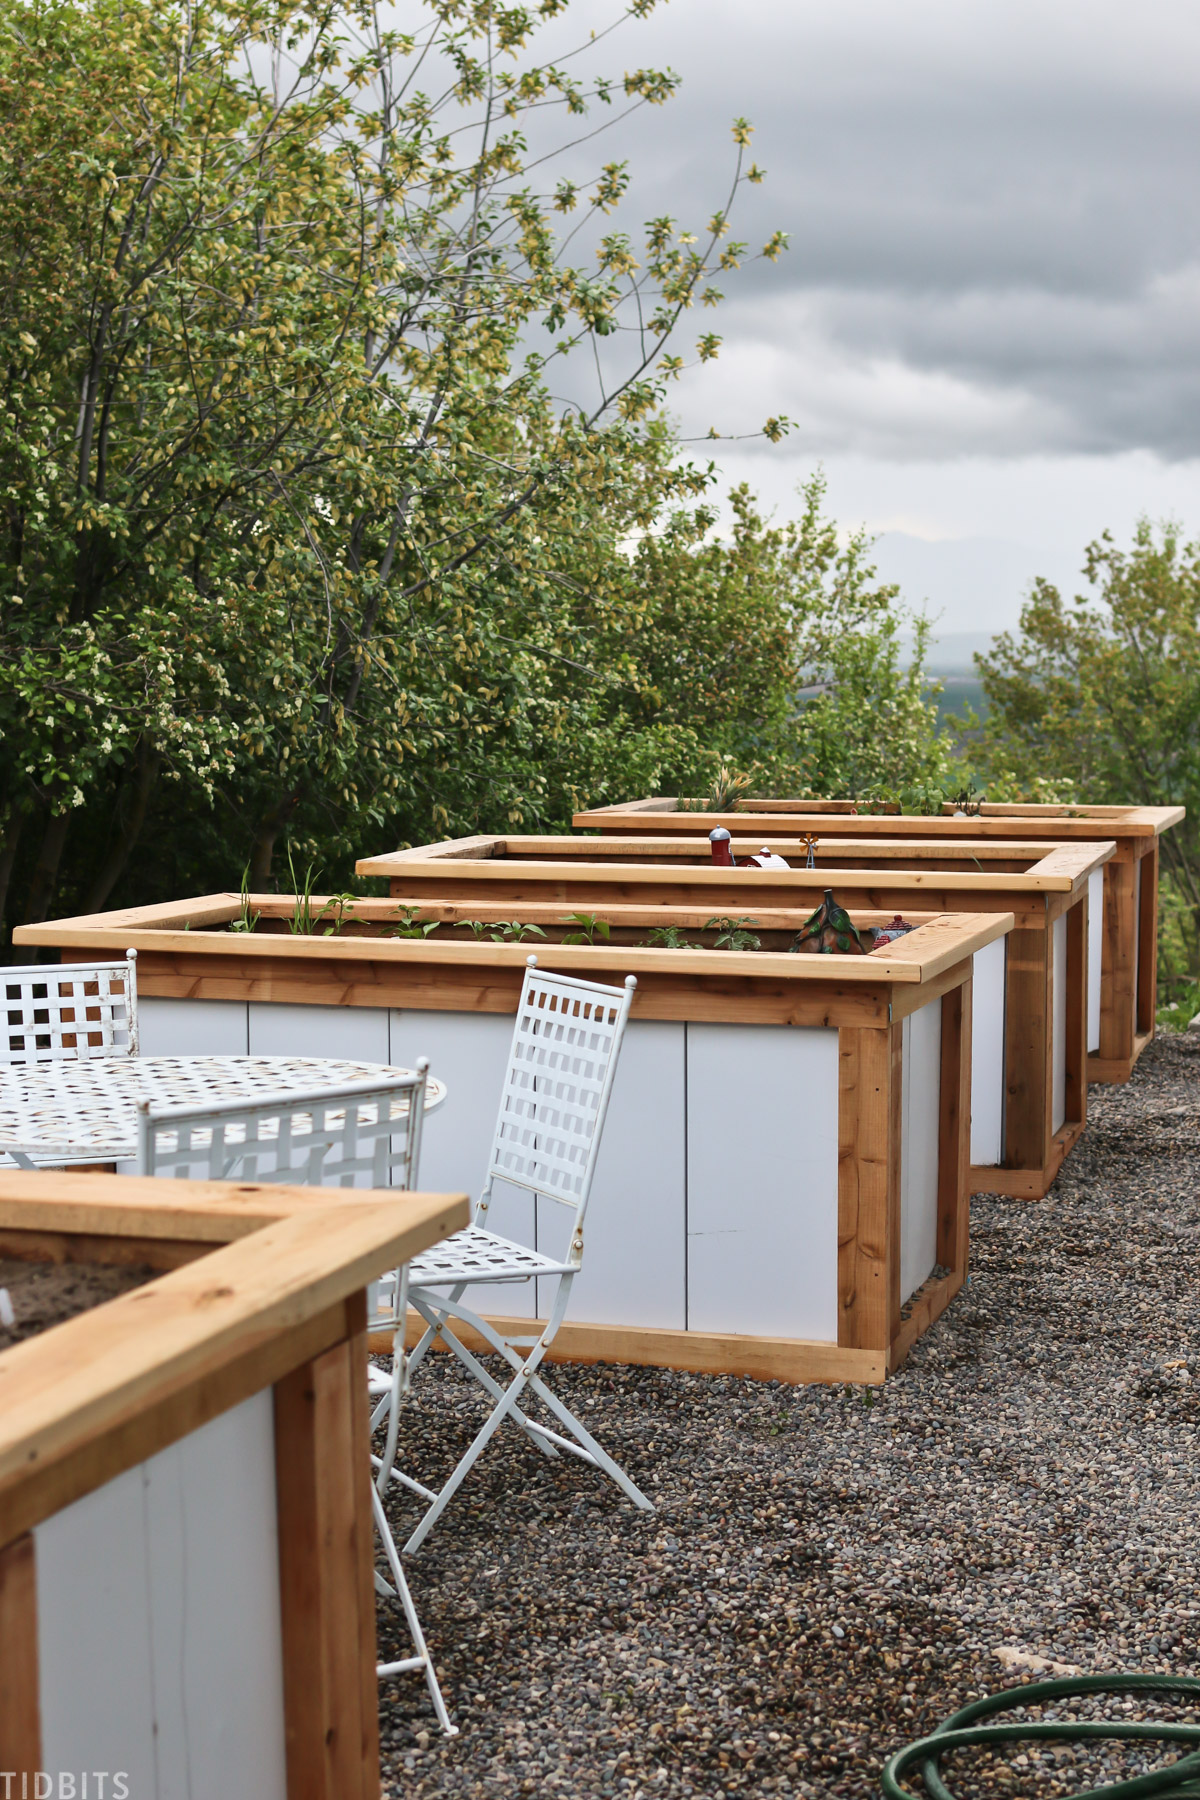 outdoor table and chairs in between tall raised garden beds